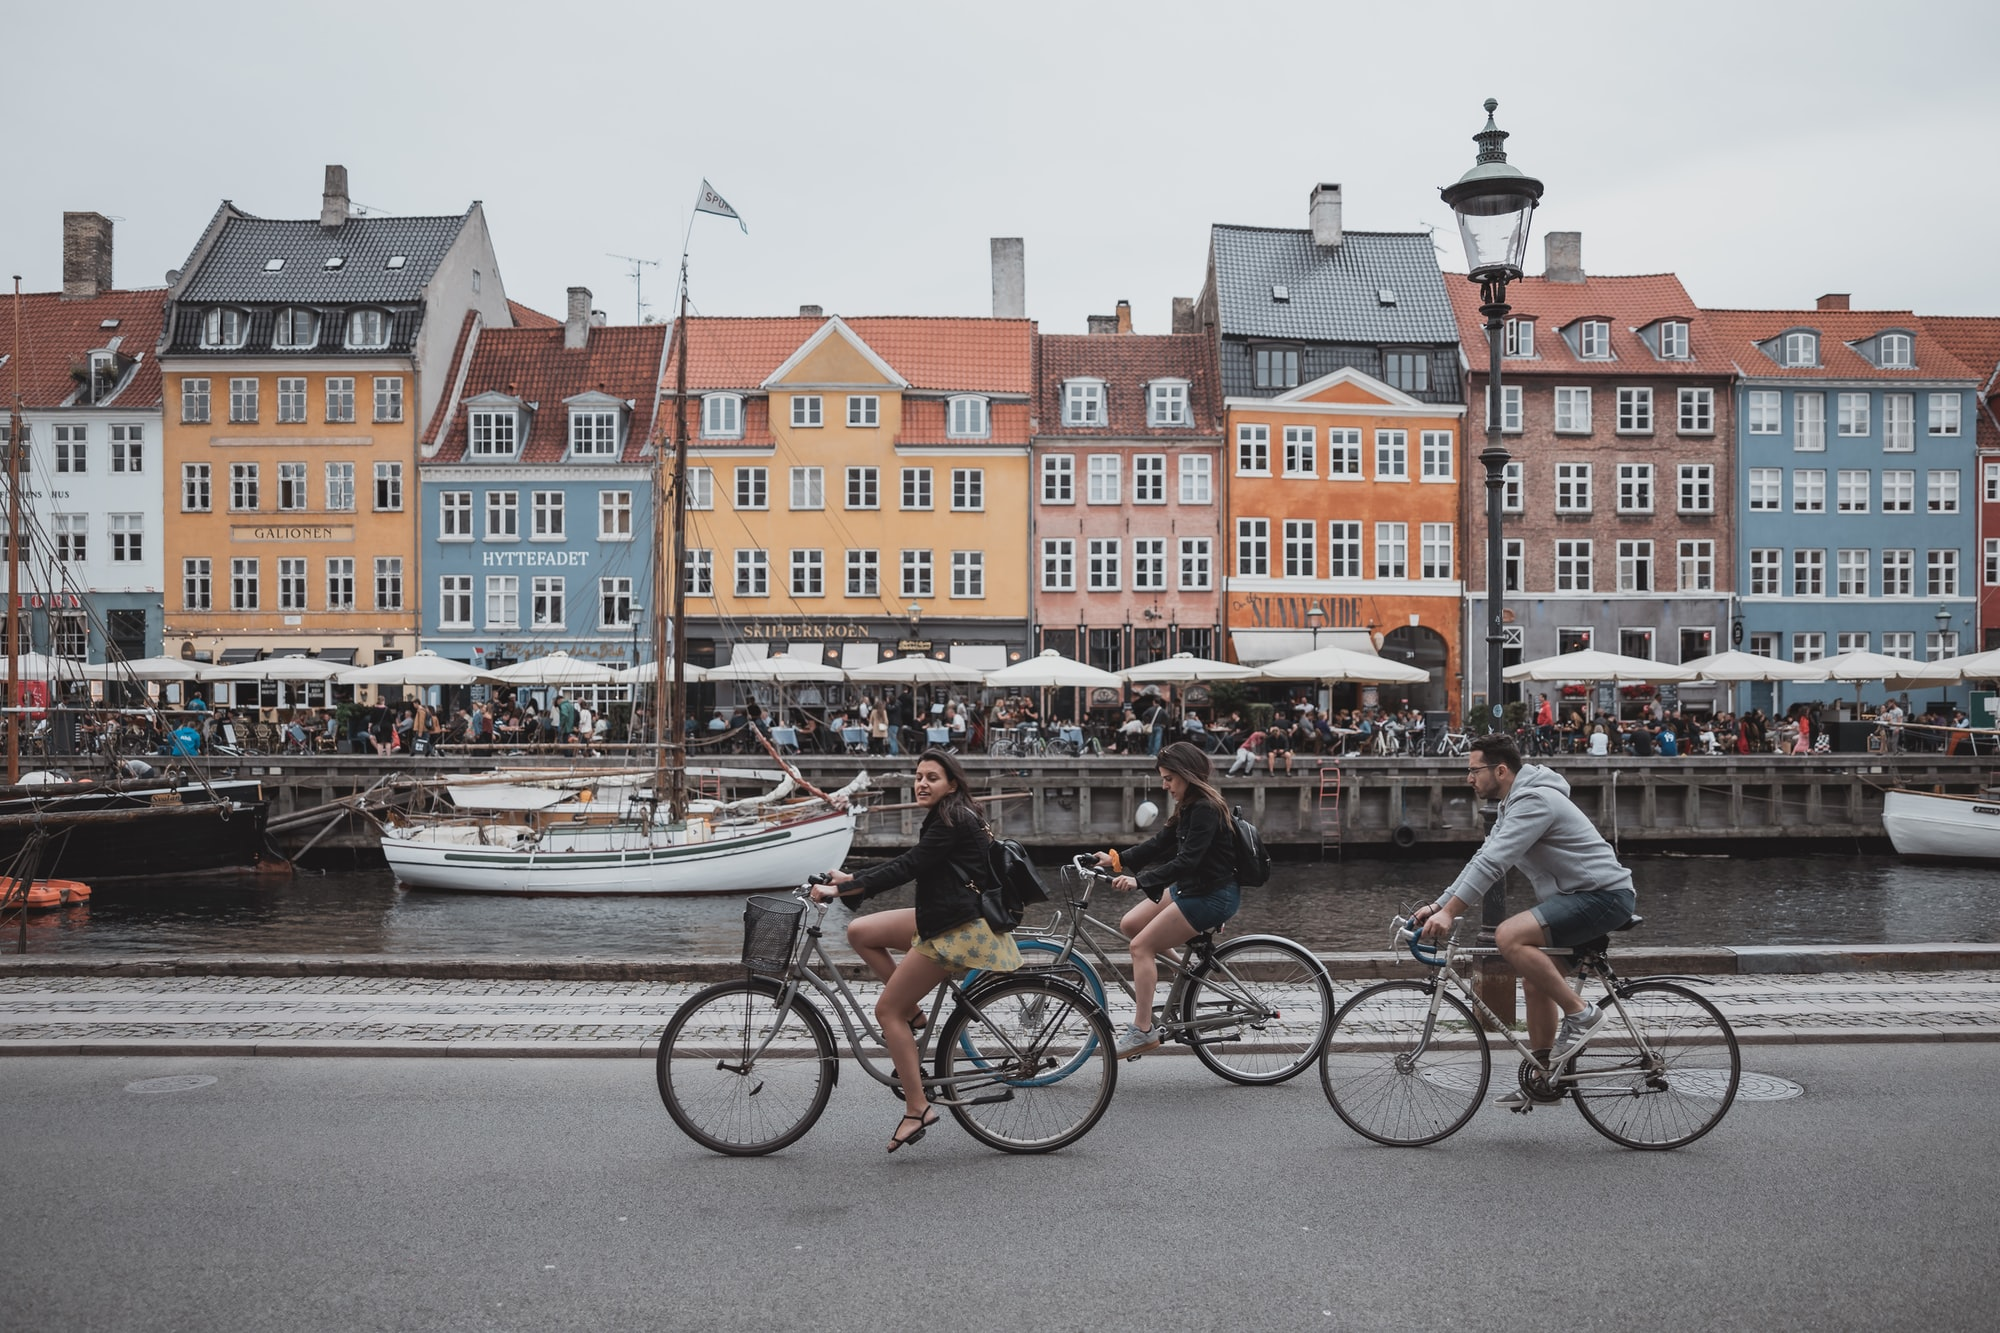 Tourists biking at Nyhavn, Copenhagen.